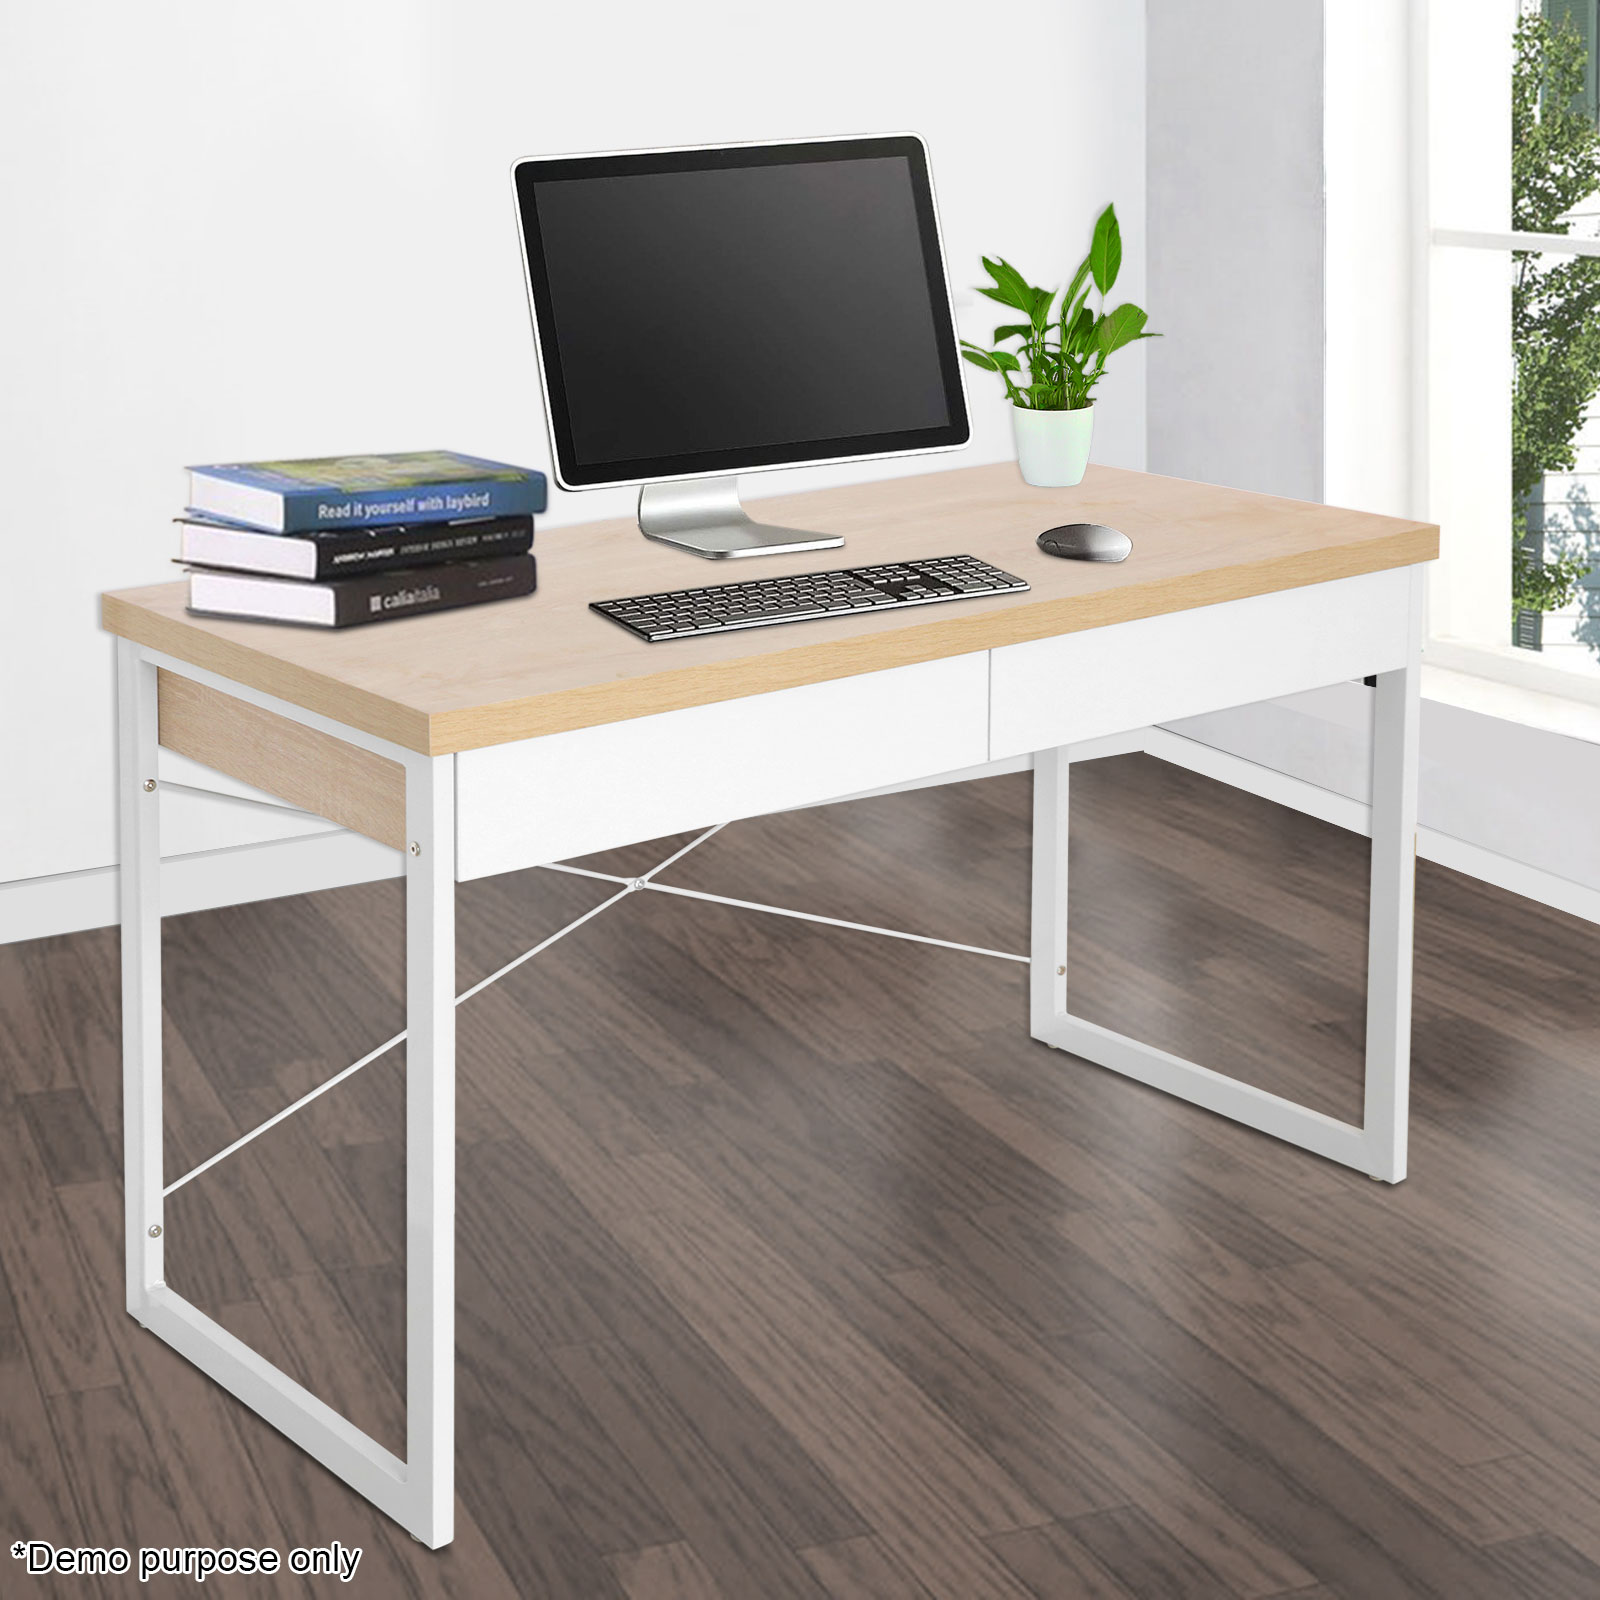 Fantastic Leick 81401 Home Office Storage End TablePrinter Stand  ATG Stores